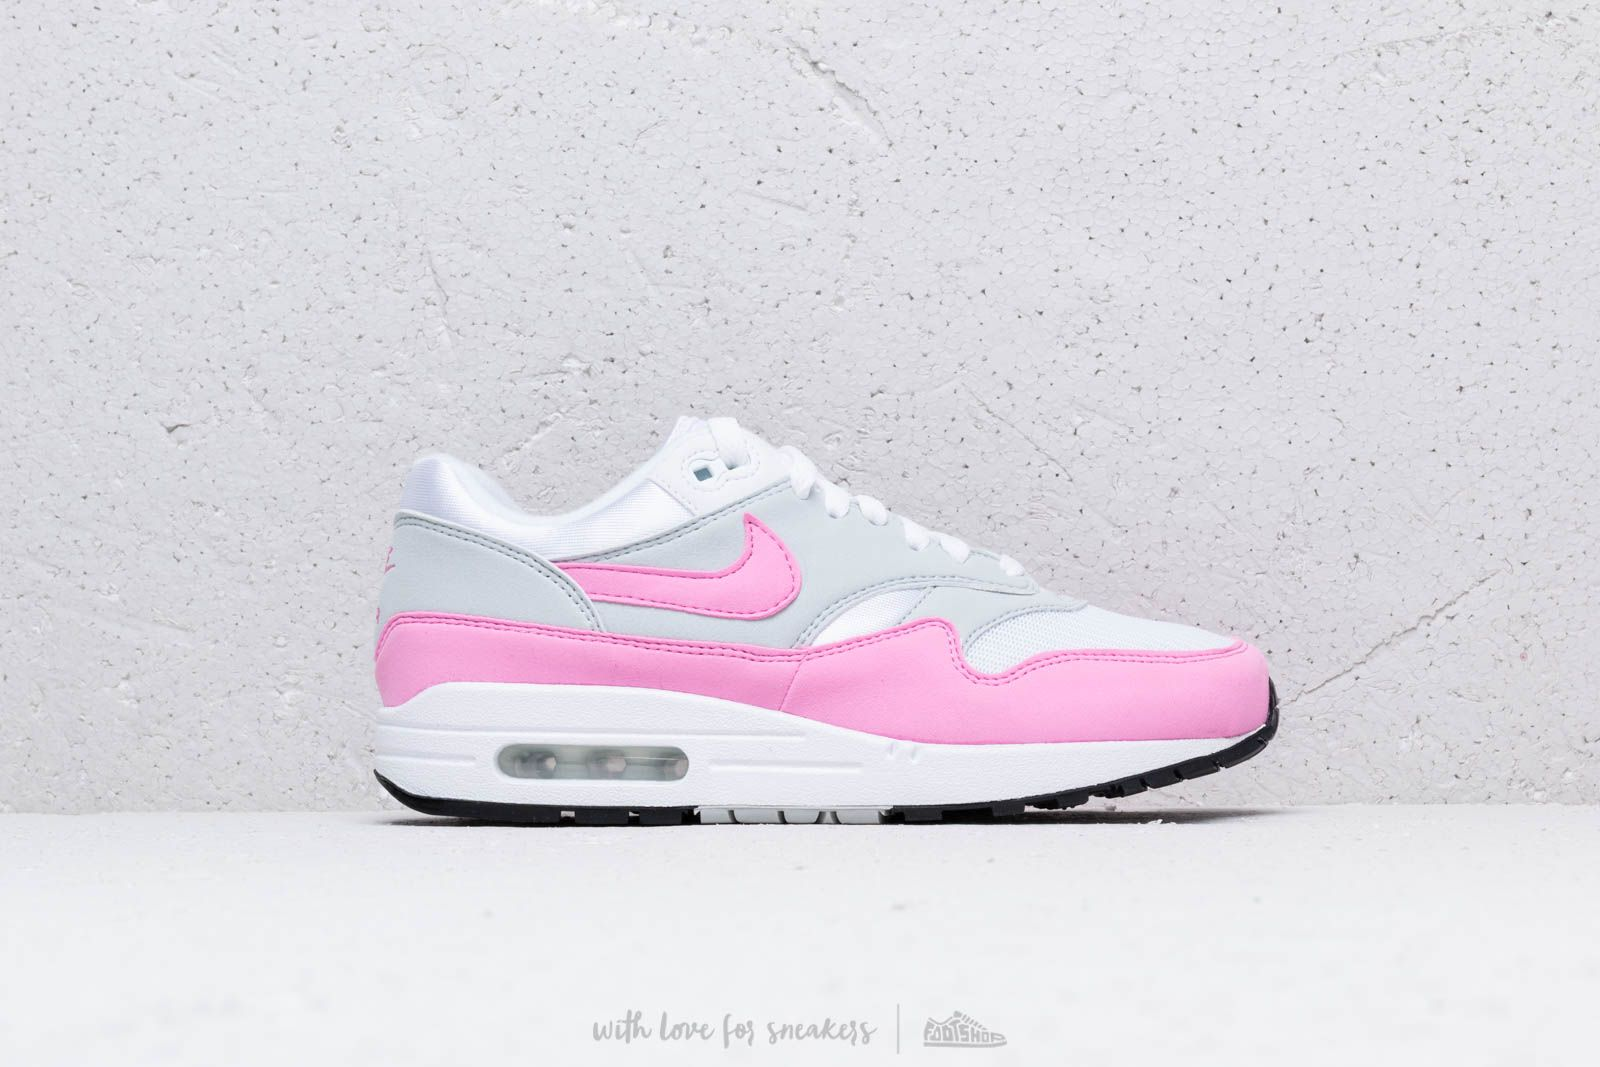 Higgins Oratore Provalo  Women's shoes Nike W Air Max 1 Essential White/ Psychic Pink | Footshop